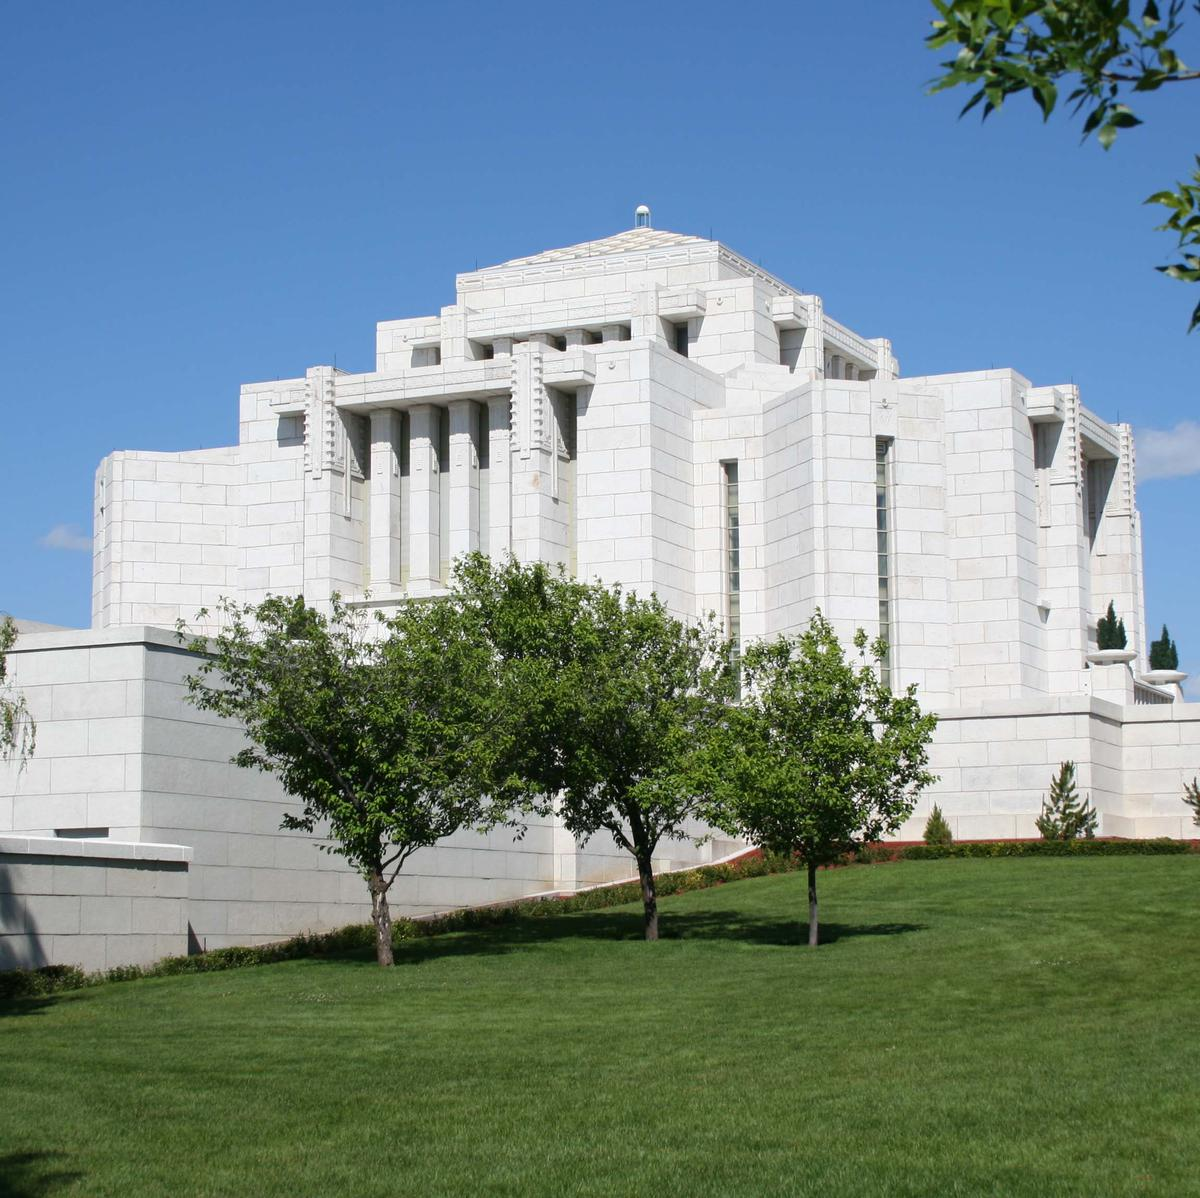 Image of the Cardston Alberta Mormon Temple